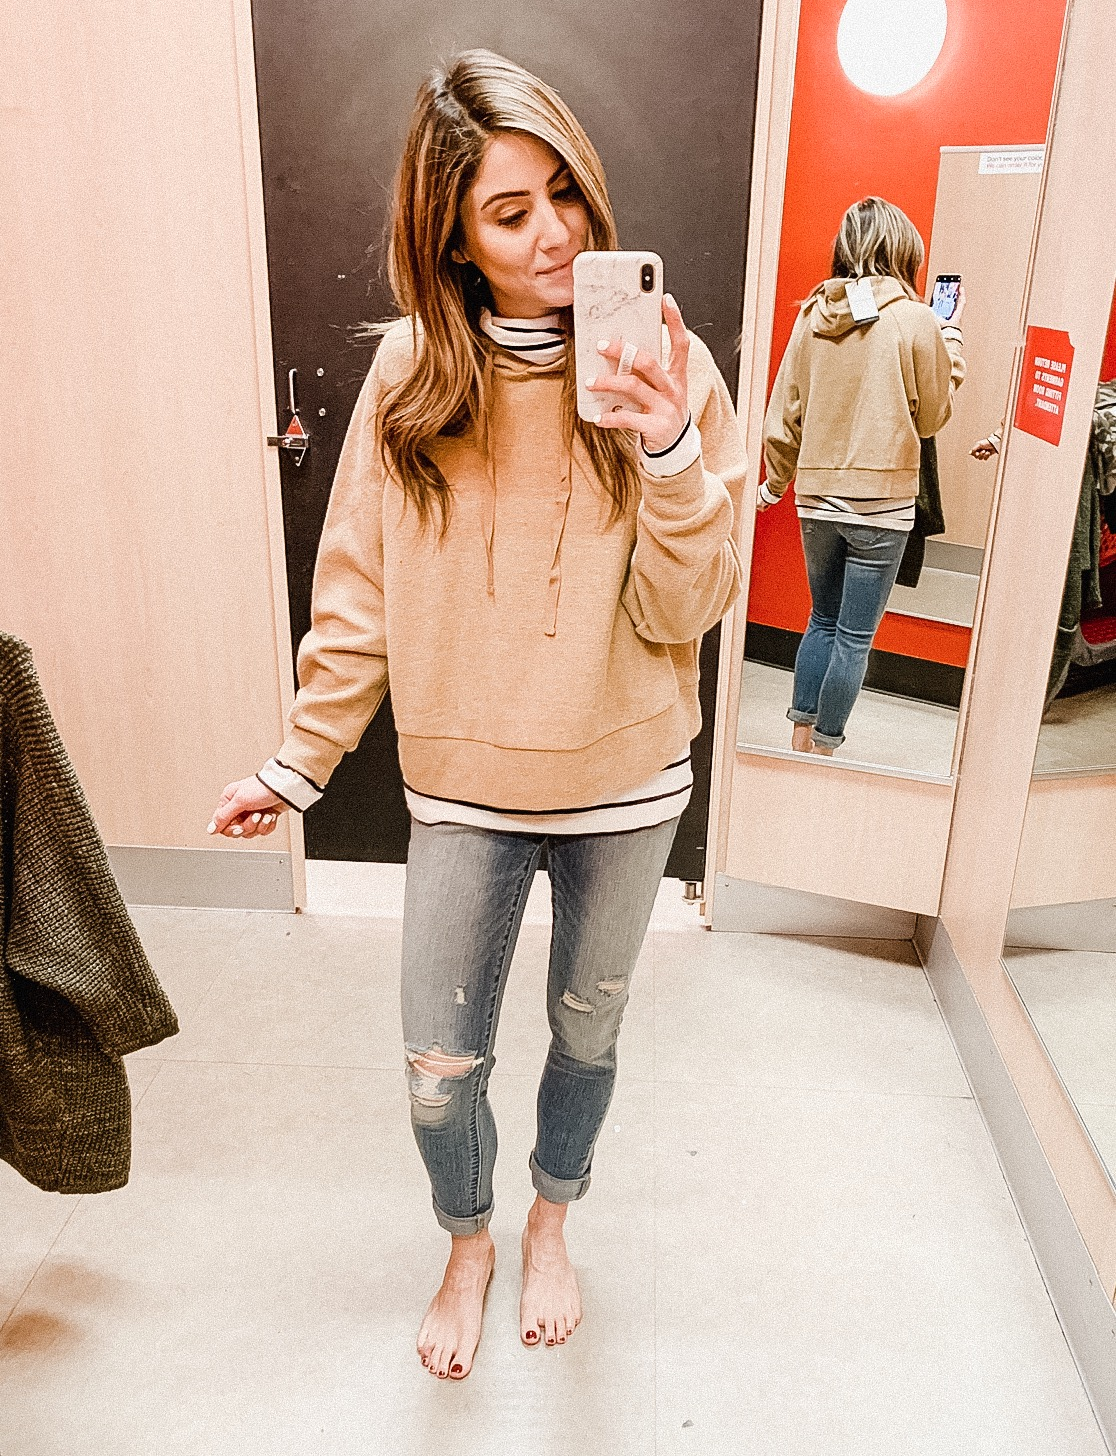 Connecticut life and style blogger Lauren McBride shares a January Target try on featuring outfits and home decor.